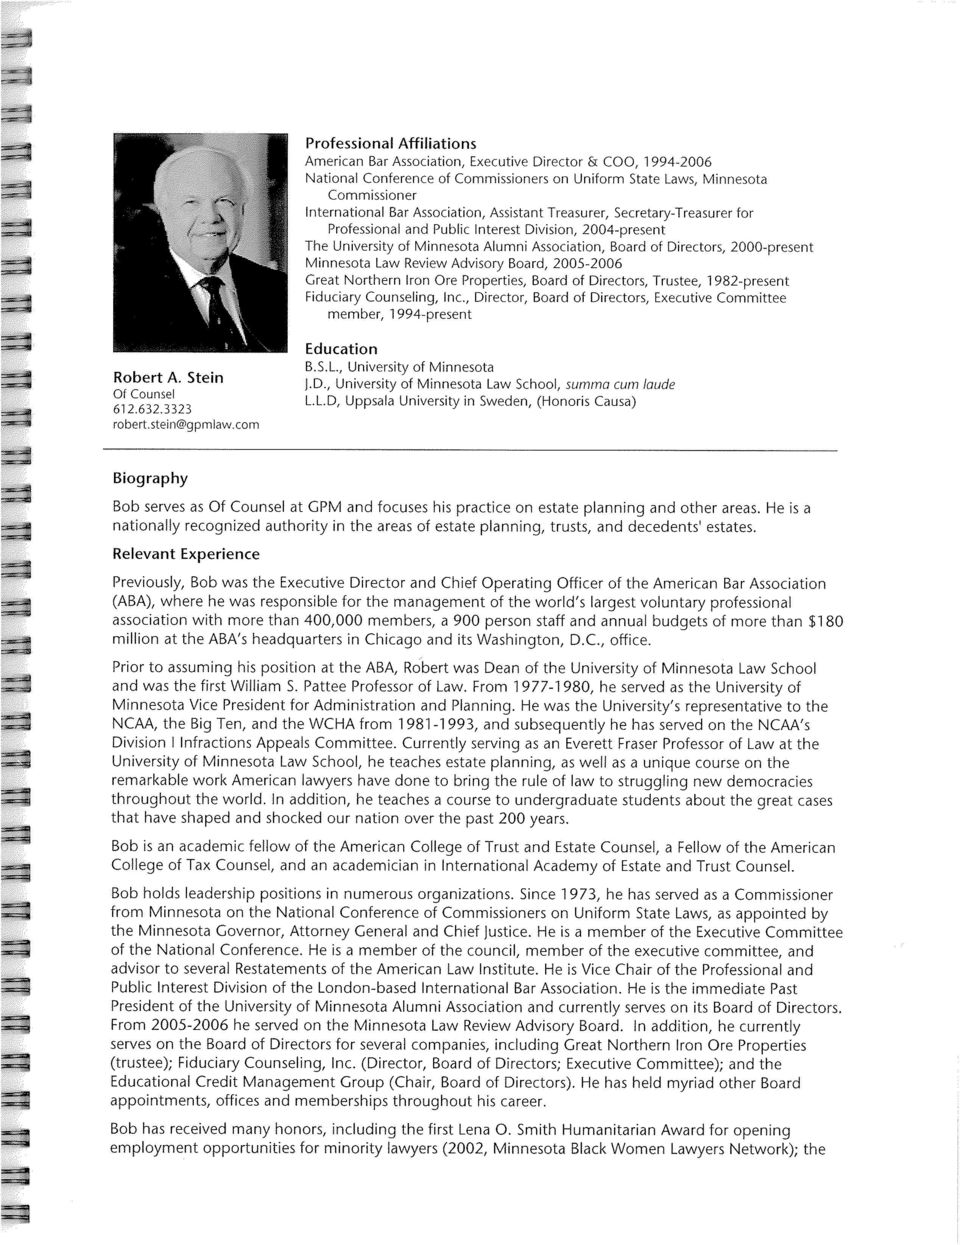 Minnesota Law Review Advlsory Board, 2005-2006 Great Northern Iron Ore Properties, Board of Directors, Trustee, 1982-present Fiduciary Counseling, lnc.